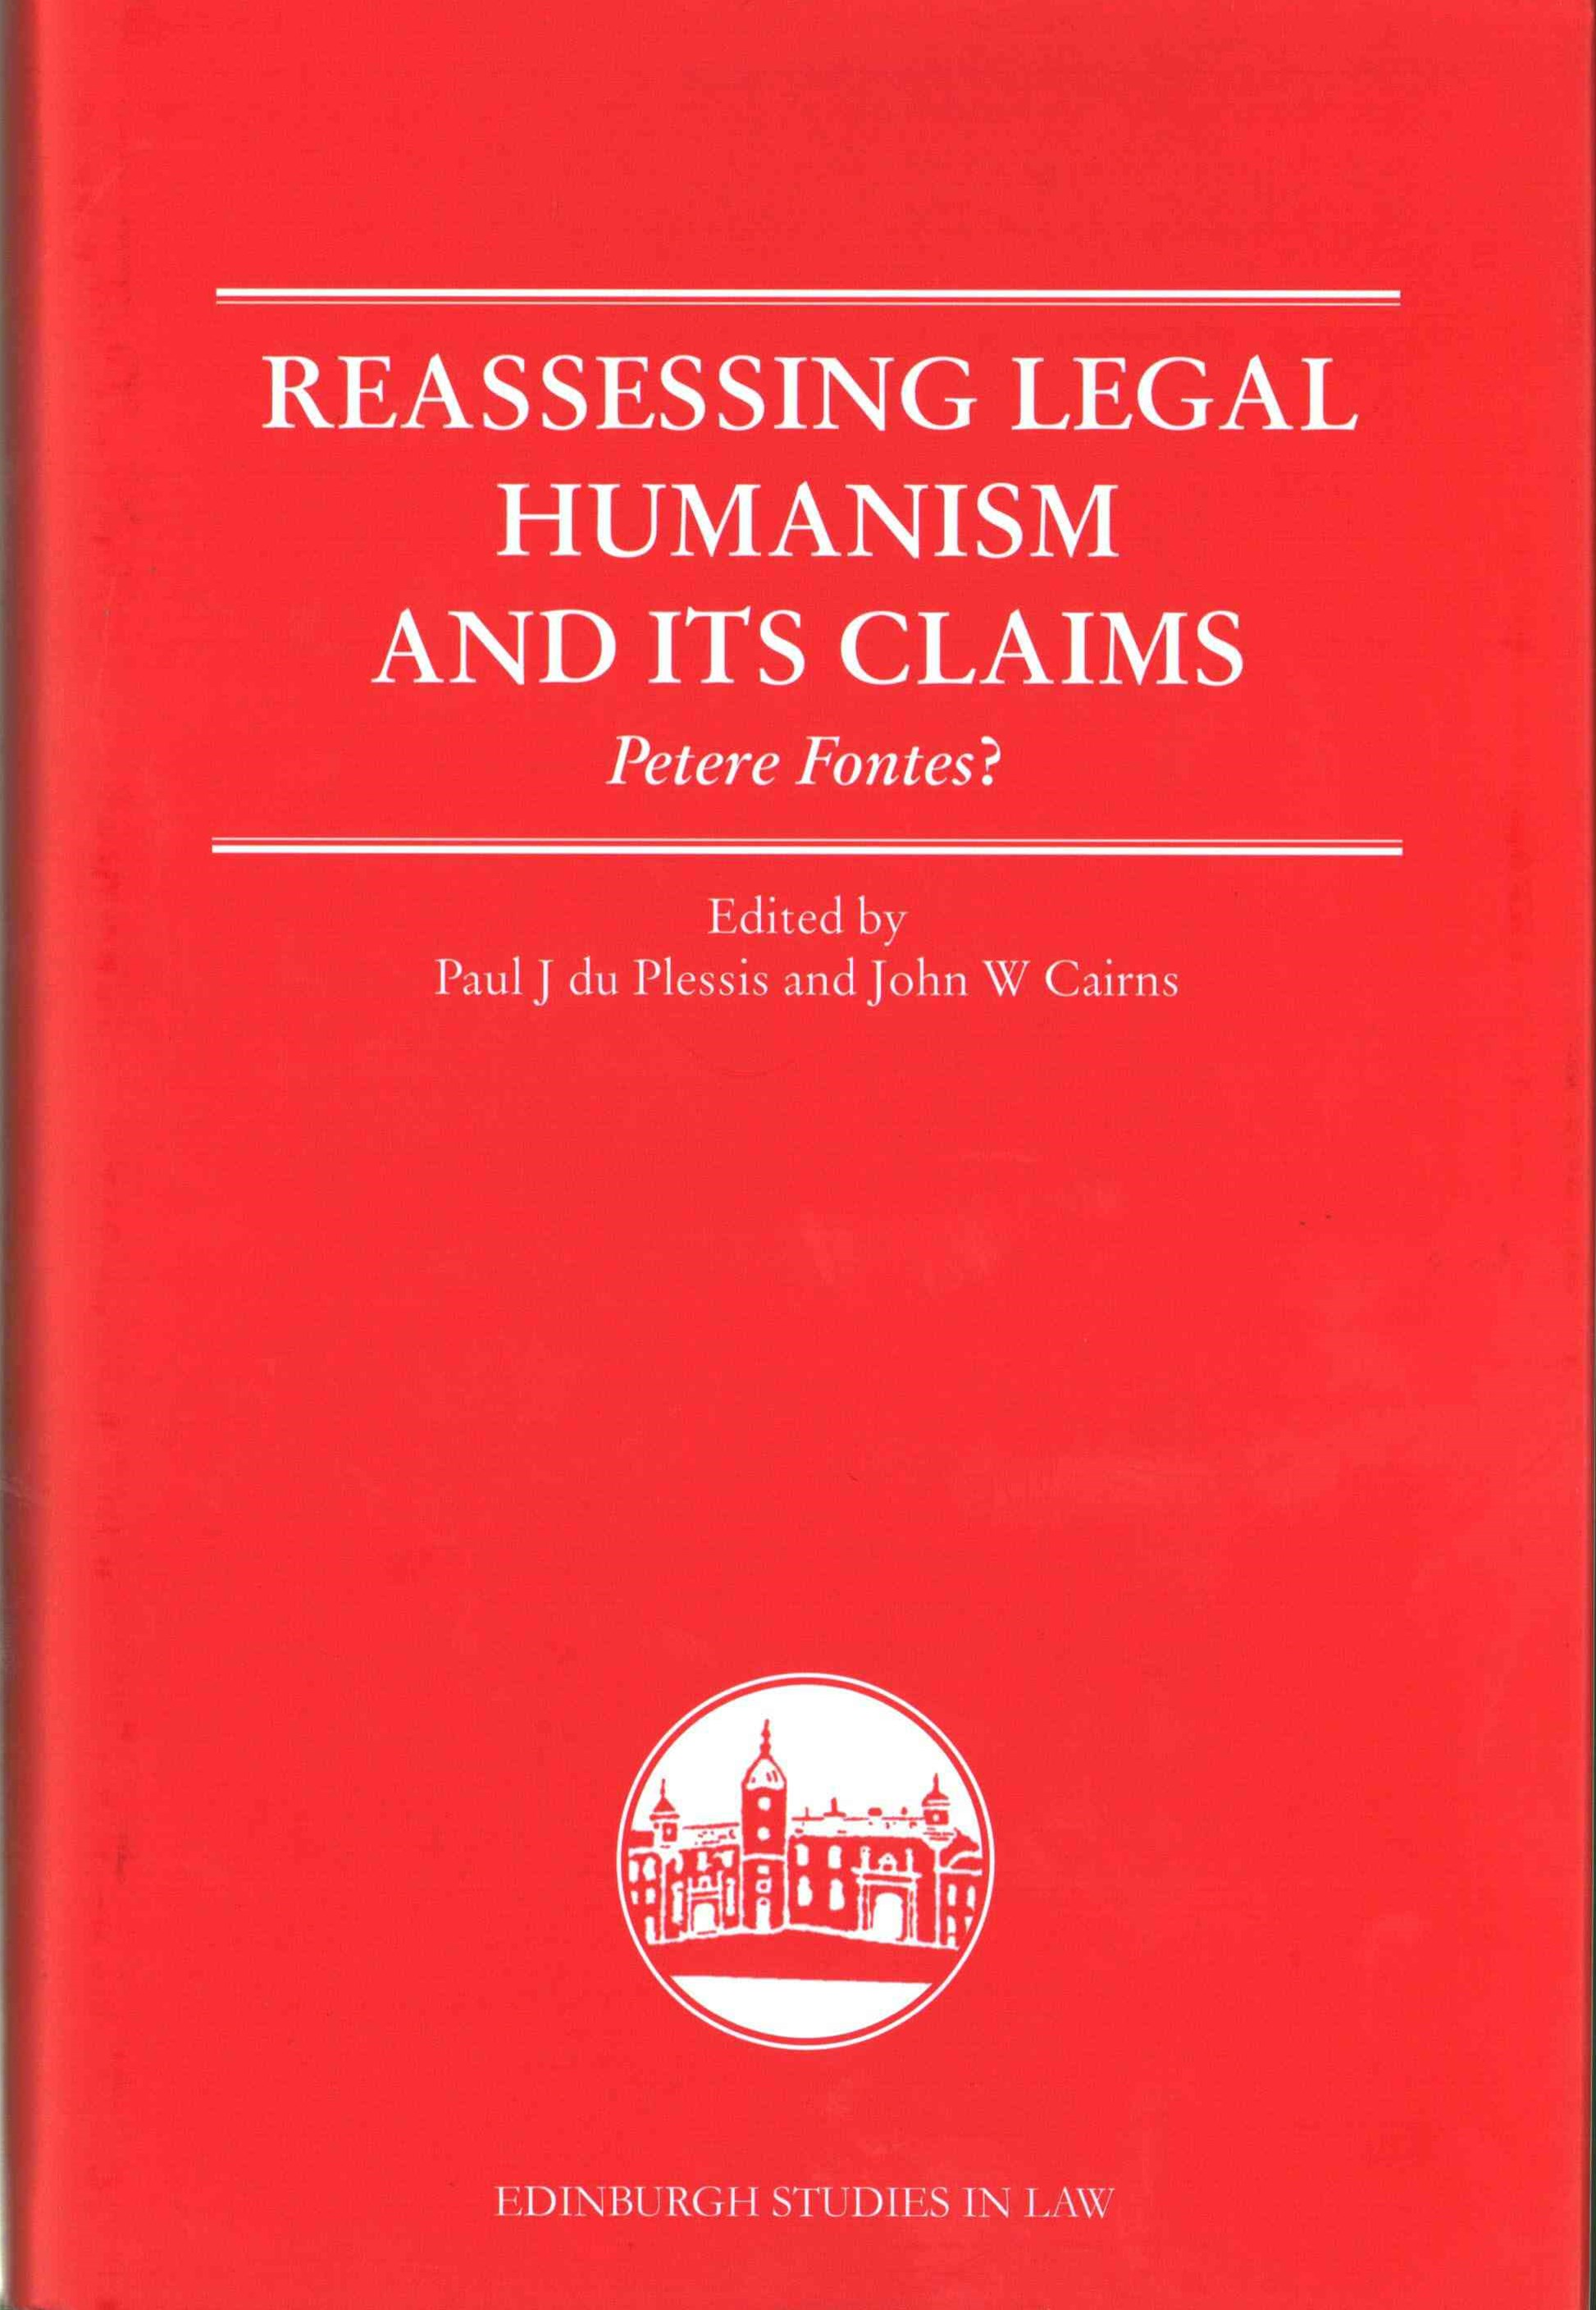 Reassessing Legal Humanism and its Claims